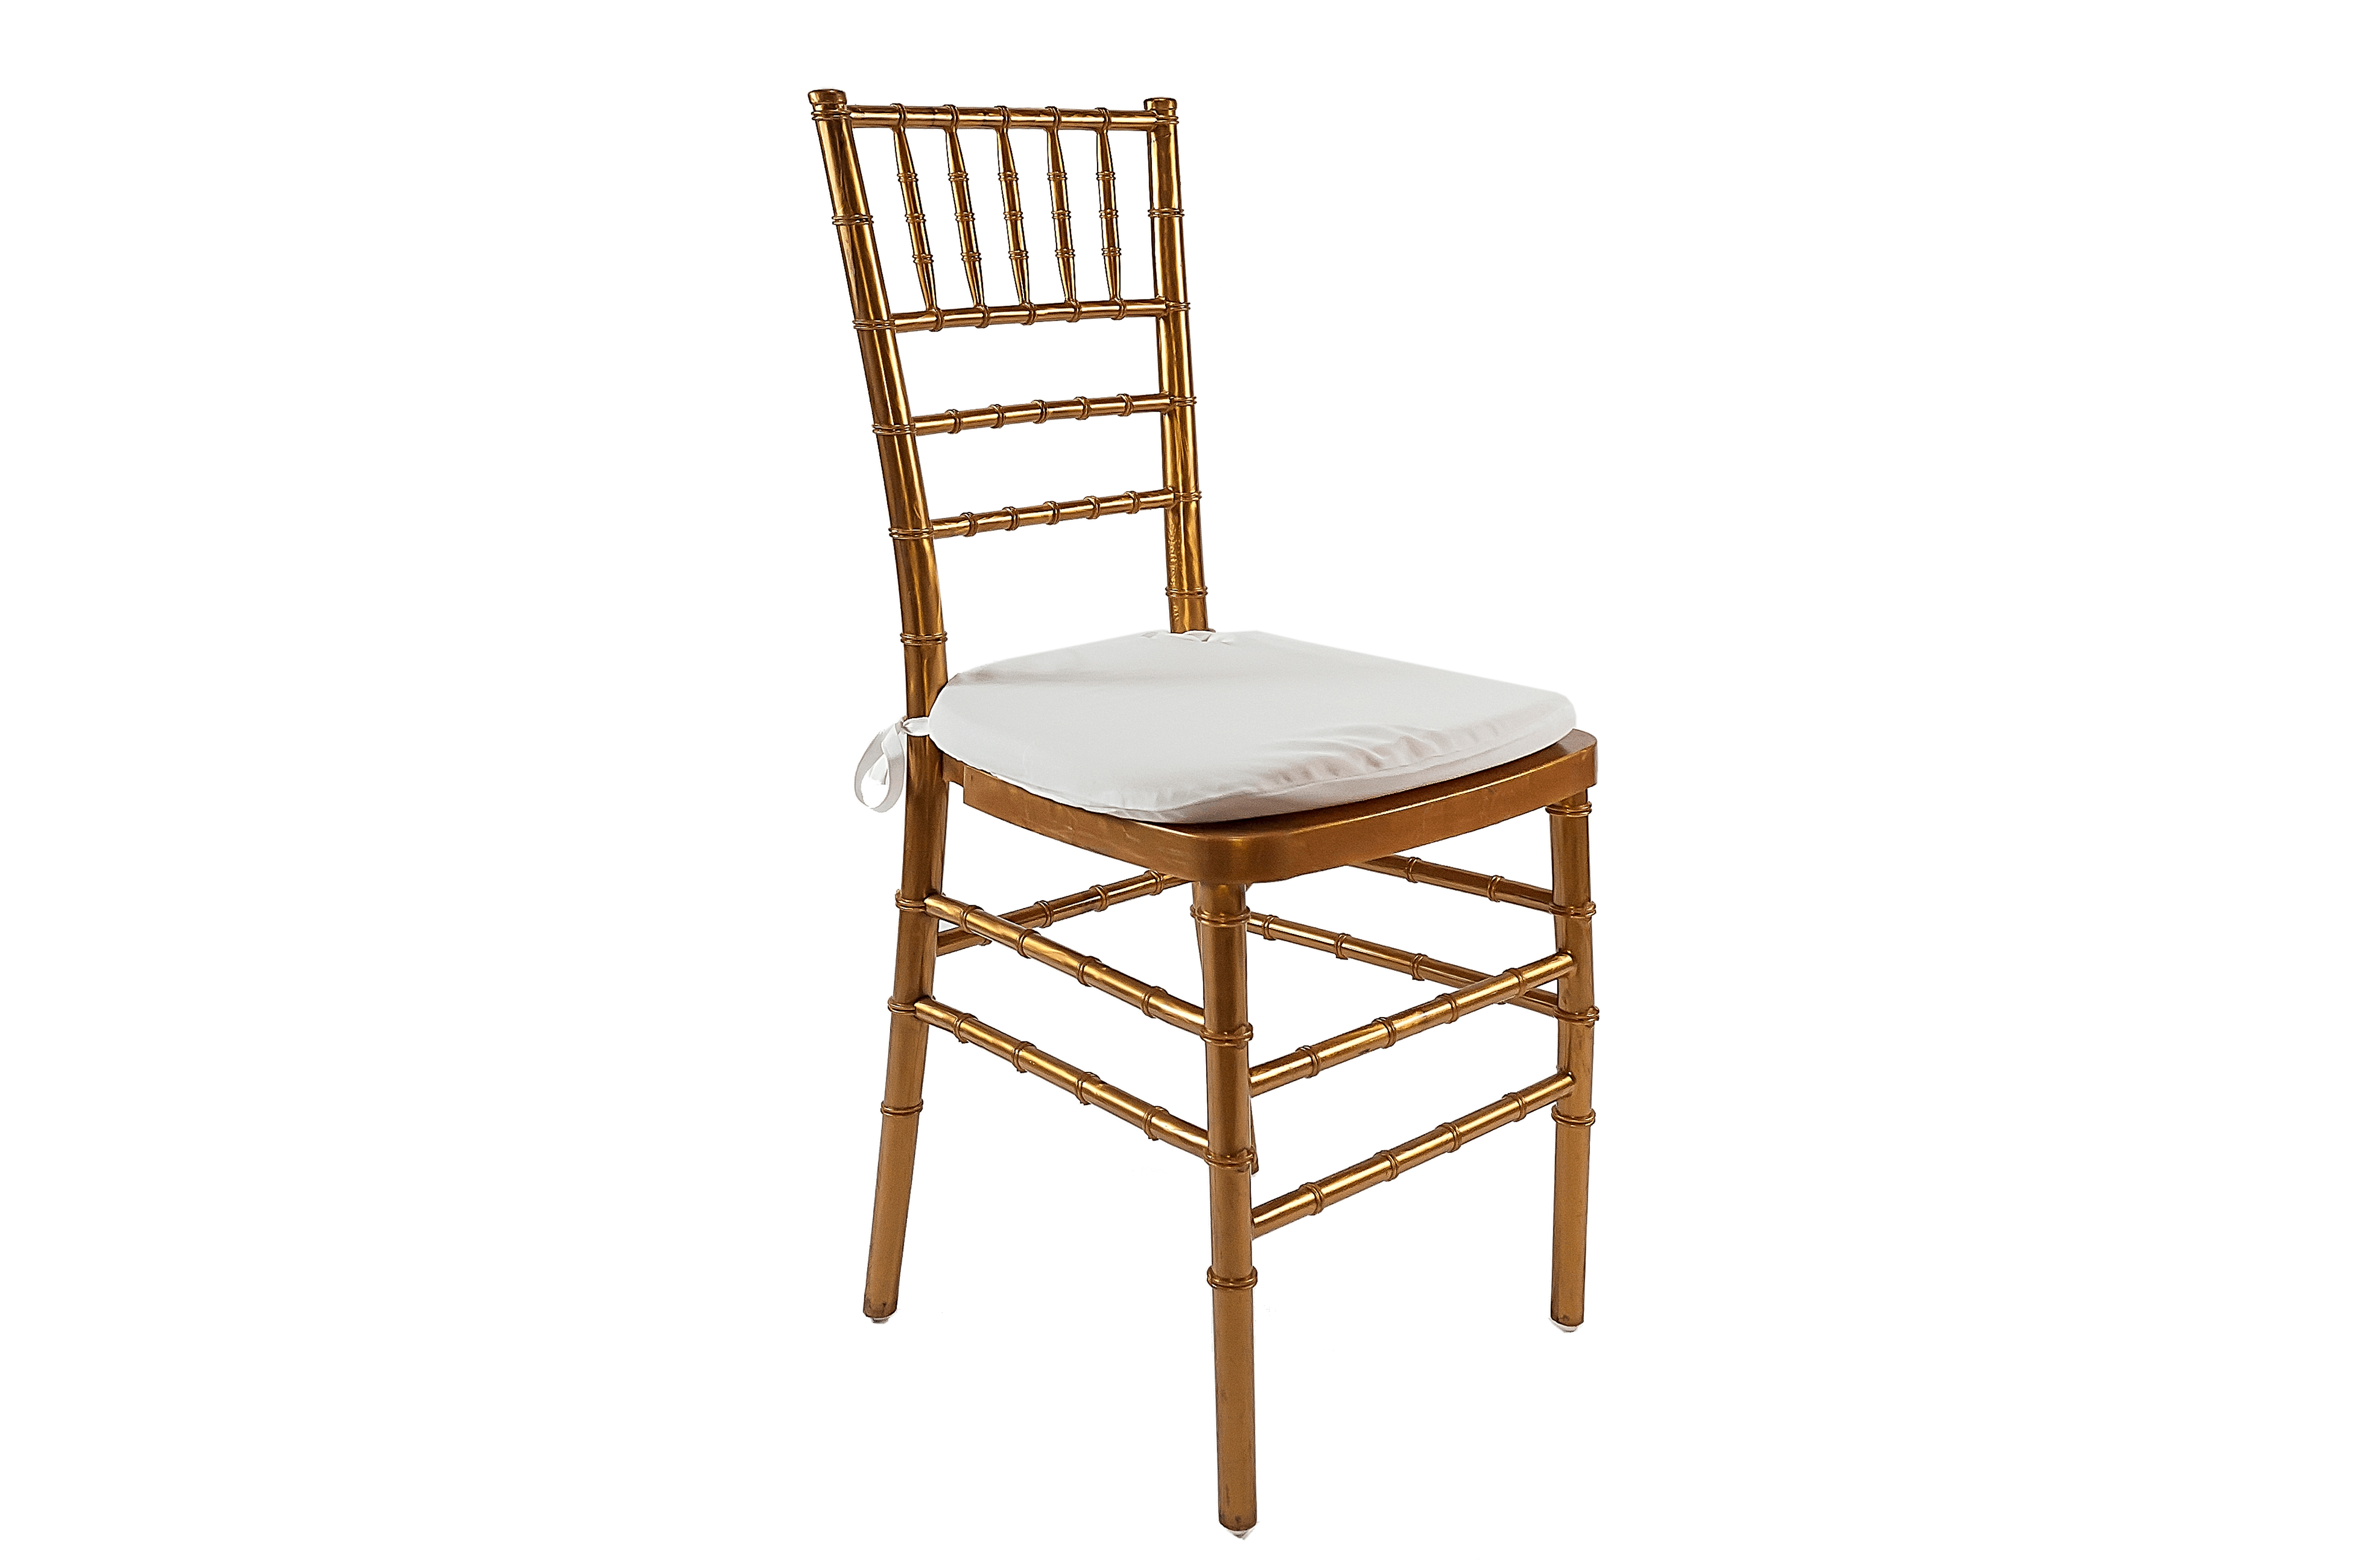 cheap chiavari chair rental miami easy accessories gold siena furniture event rentals a classic party